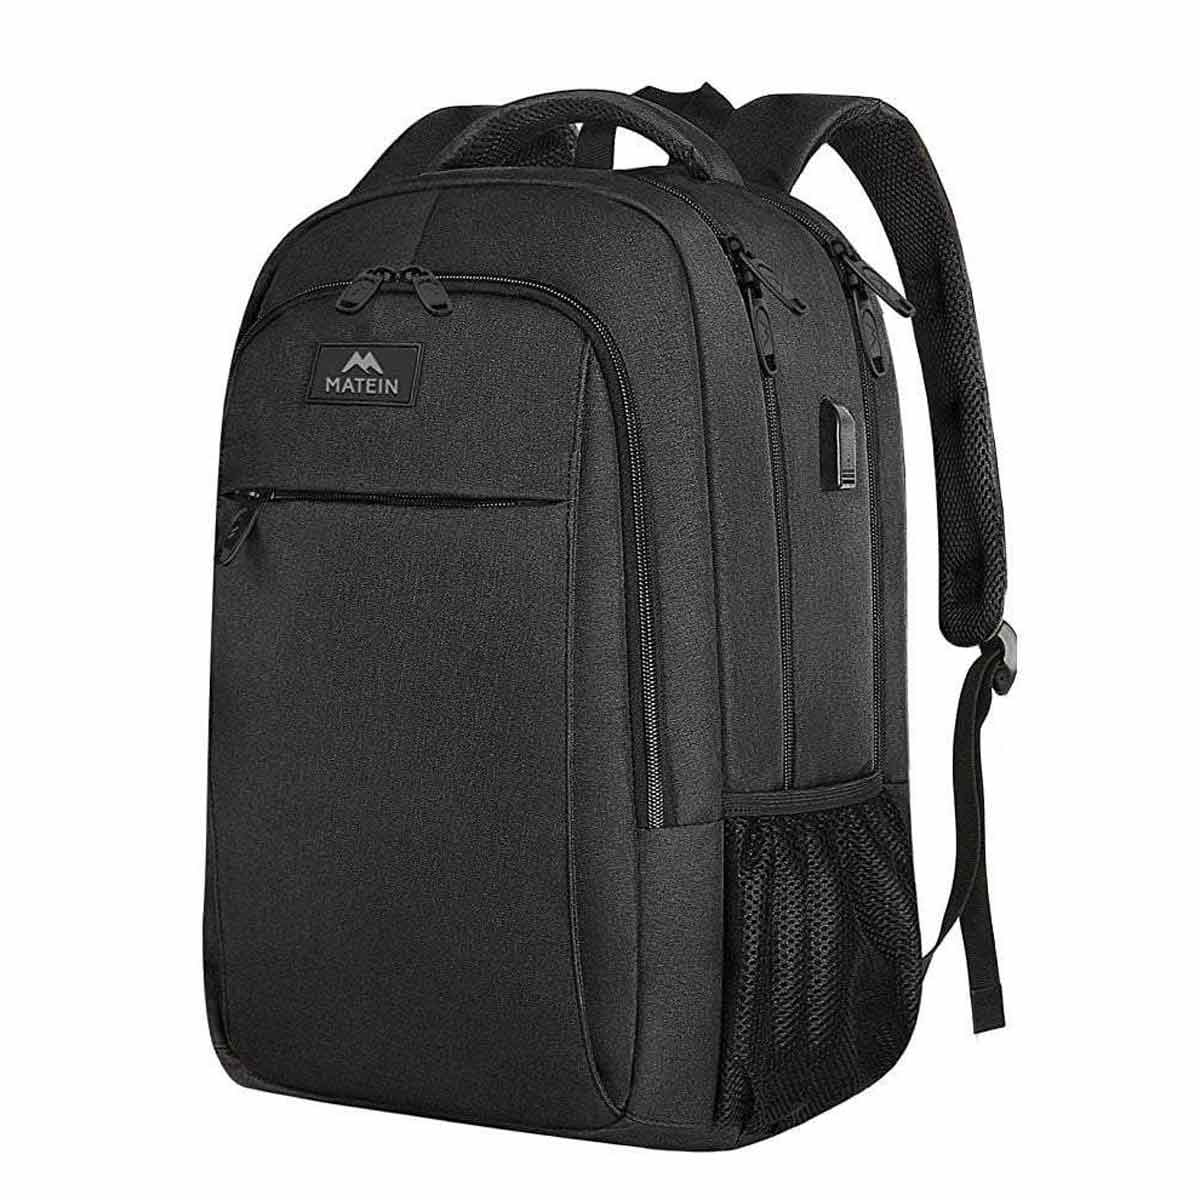 Matein Mlassic Travel Laptop Backpack - travel laptop backpack